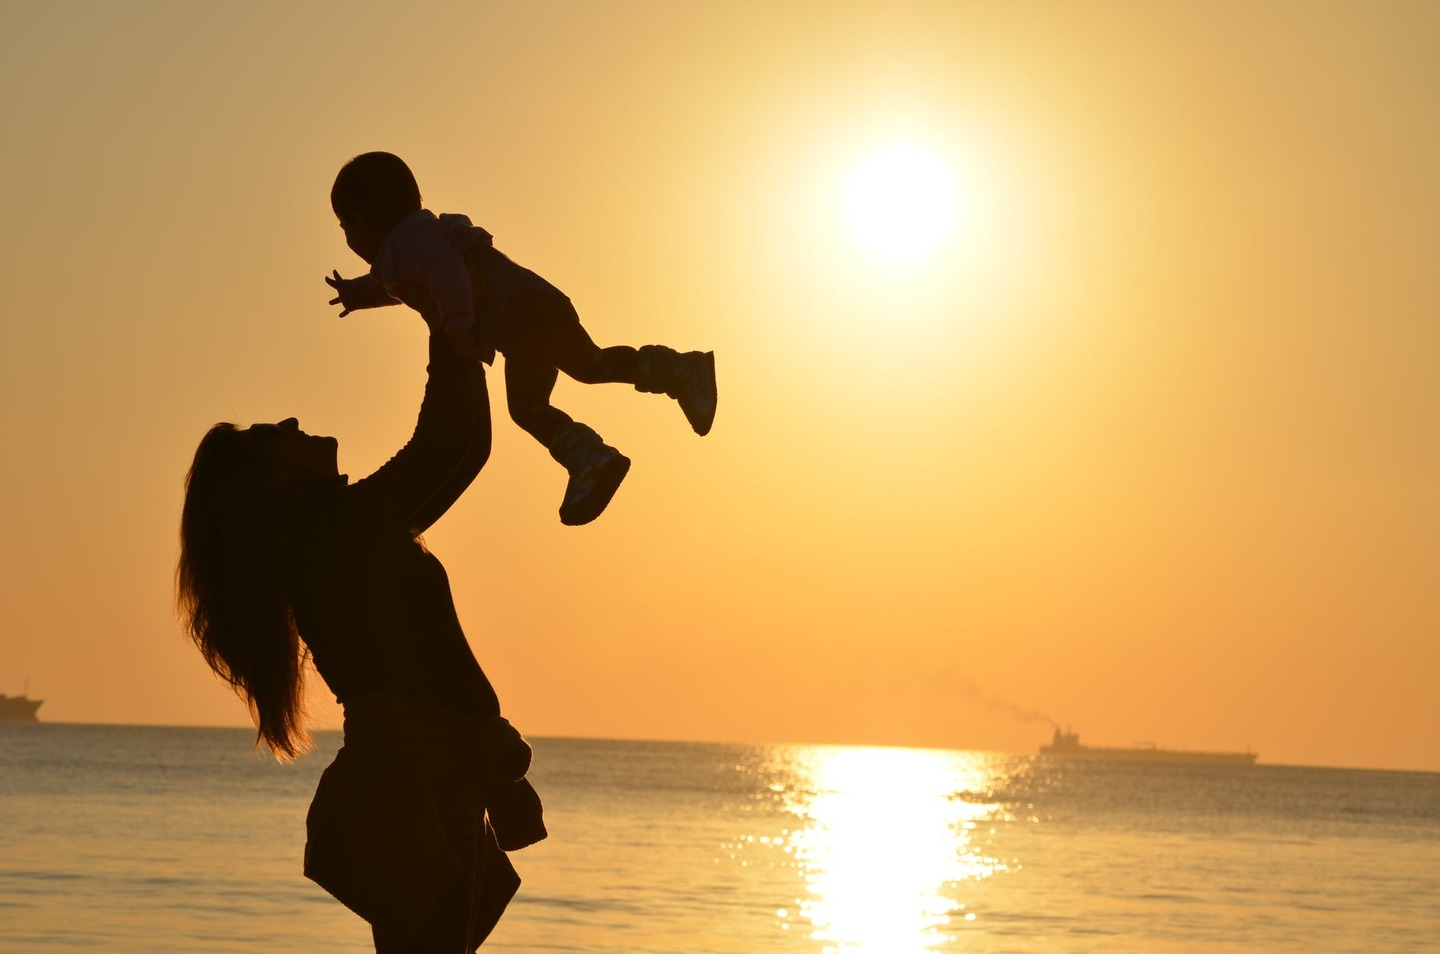 A mother and baby playing at the beach at sunset